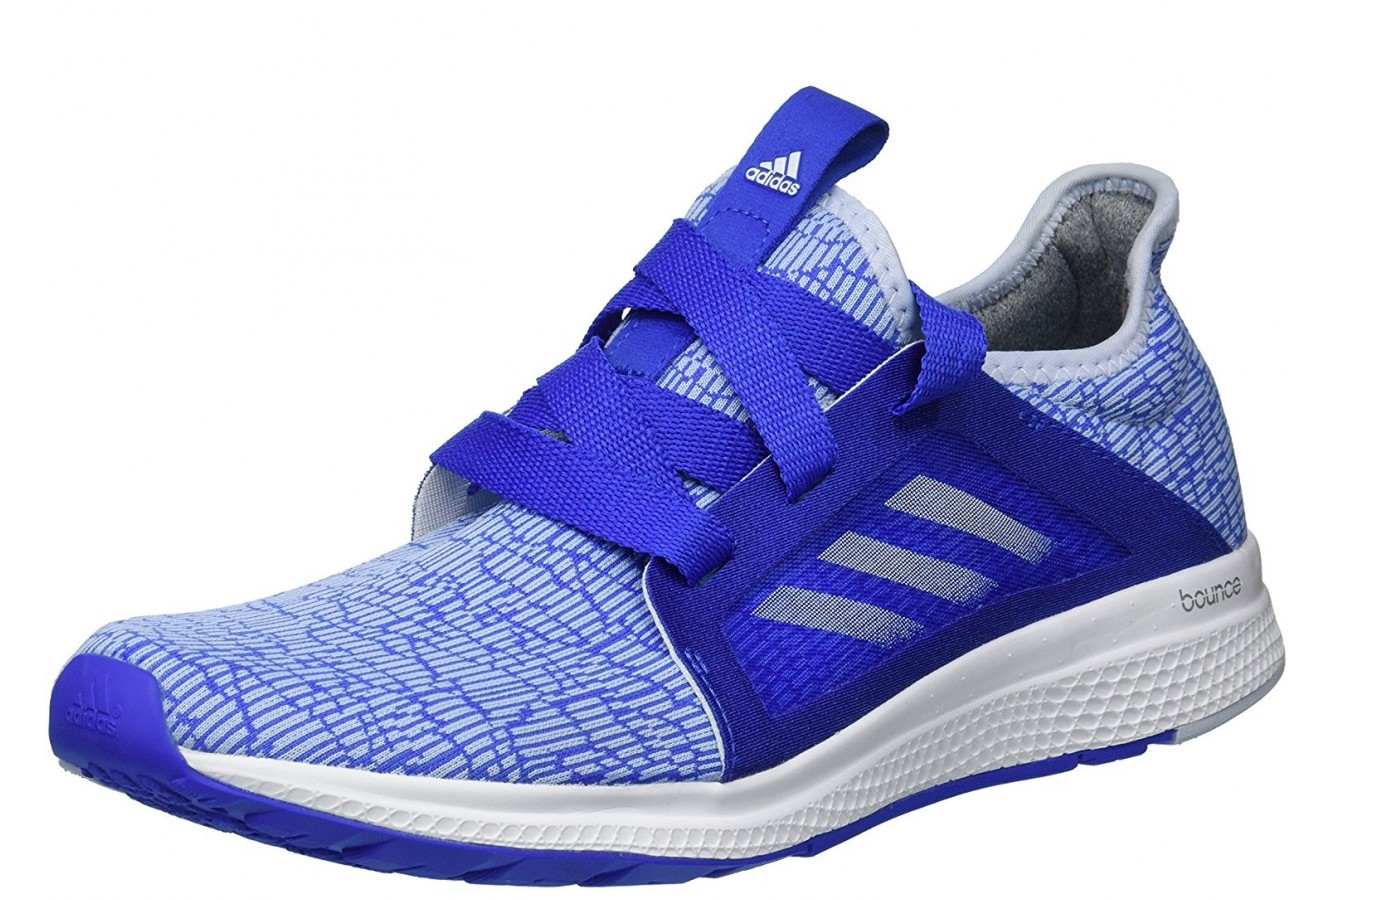 Adidas Edge Lux Side View